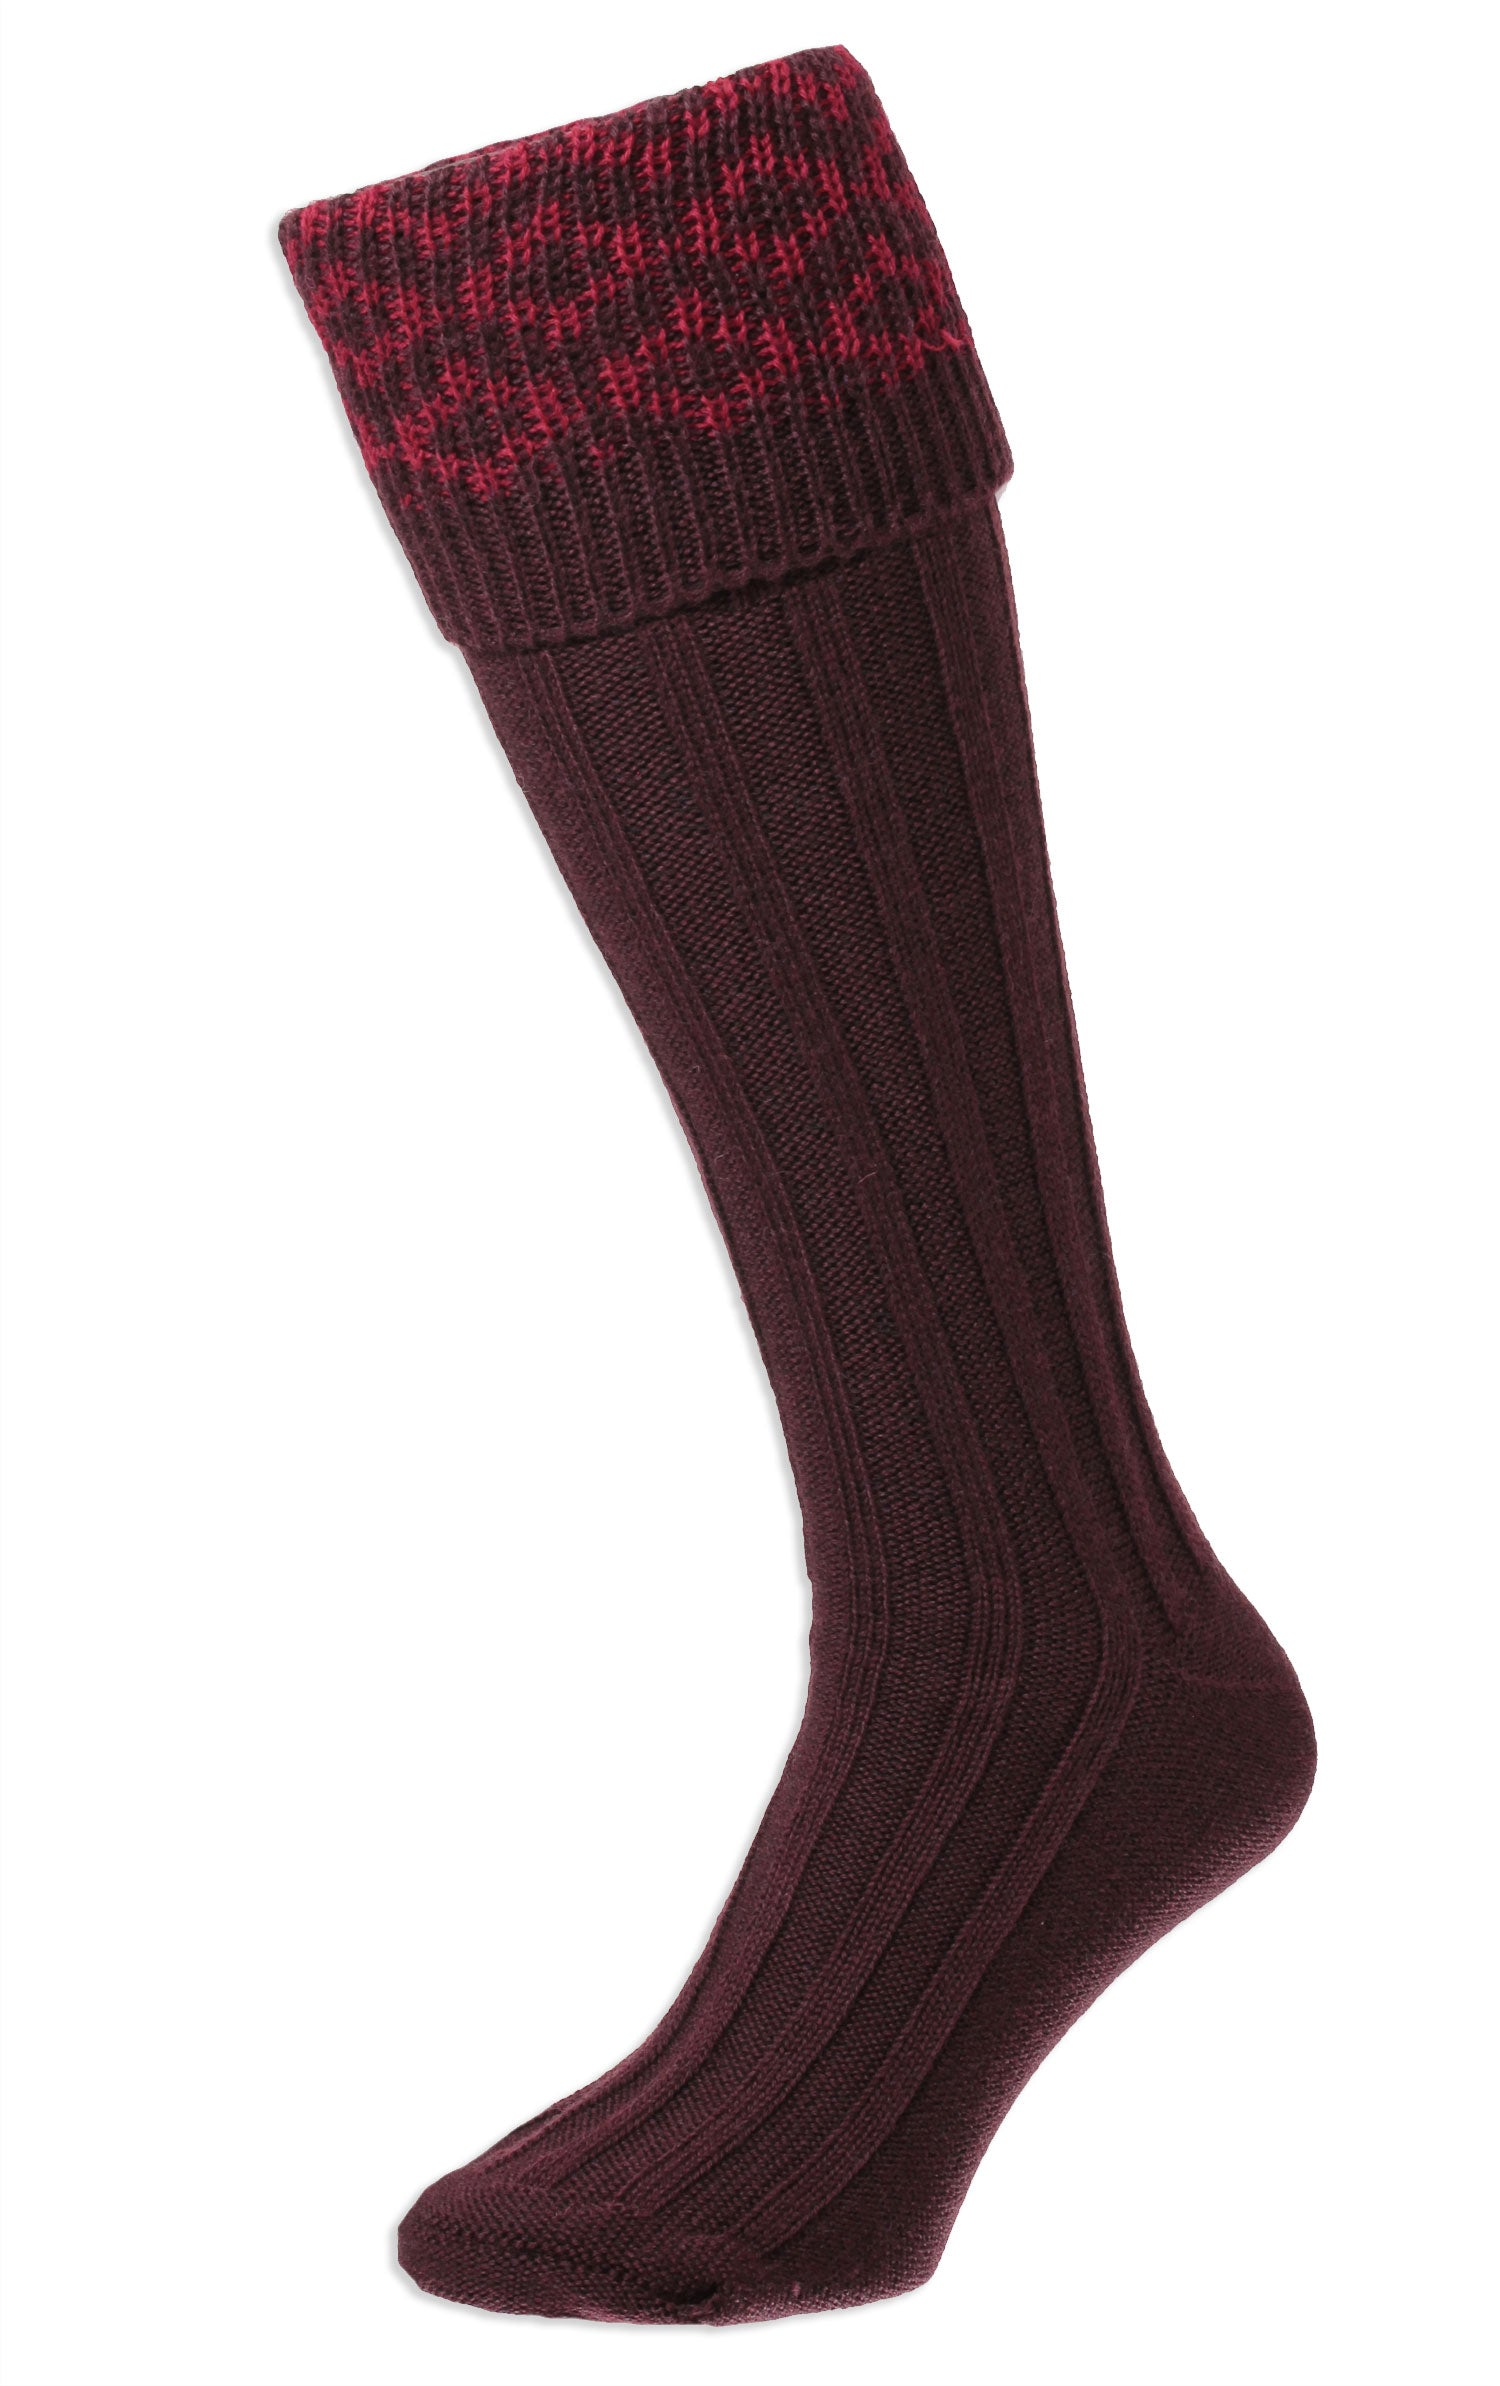 Maroon HJ Hall Cushion Foot Long Sock | Patterned Top